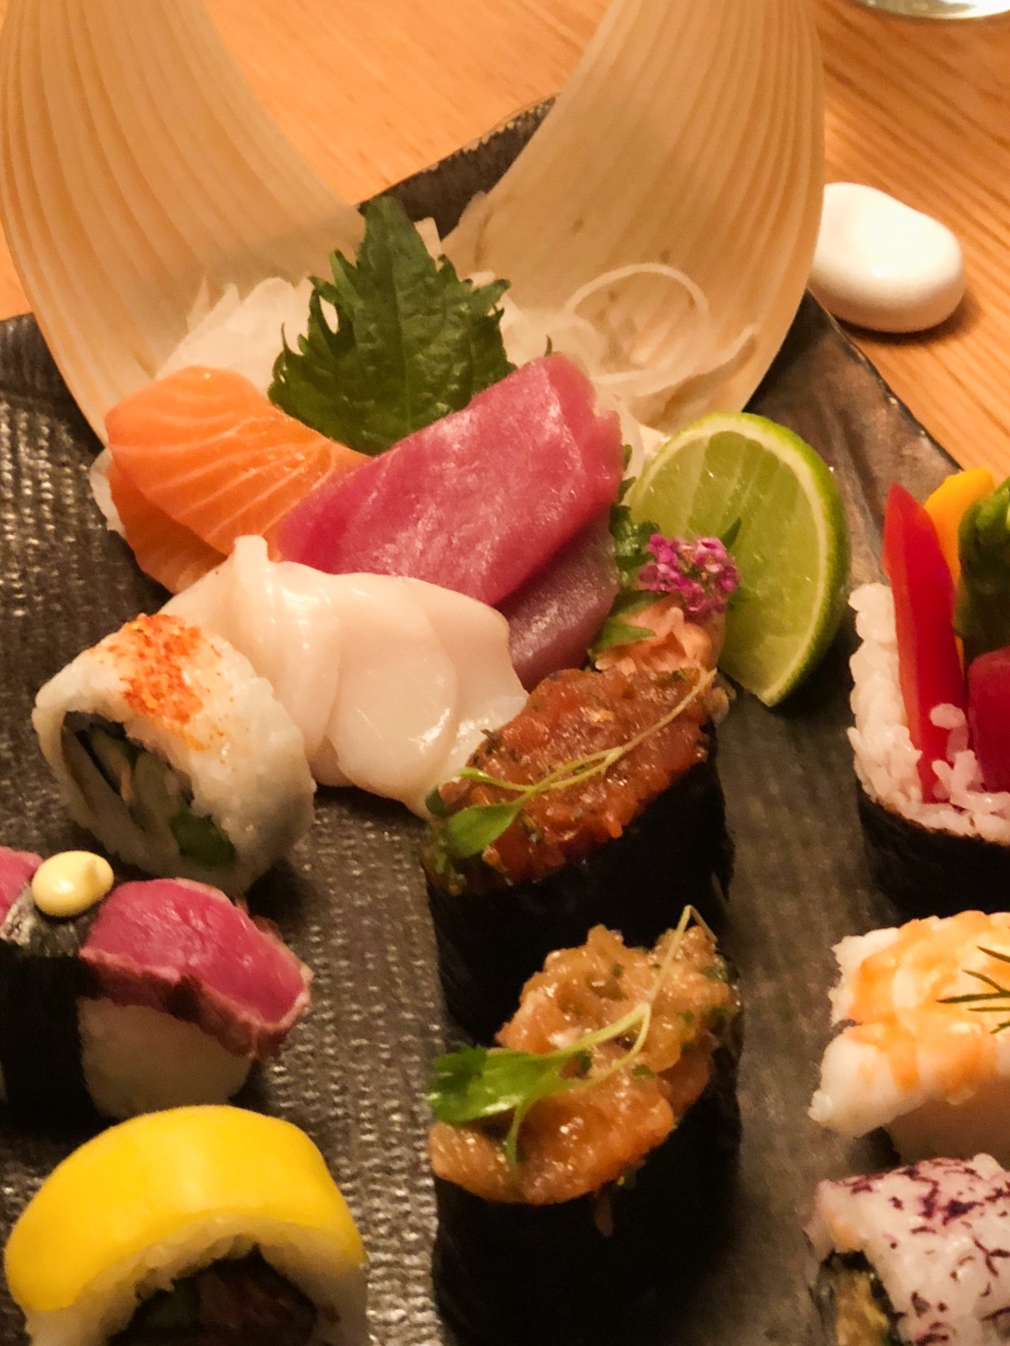 Australasia sushi platter at one of the restaurants in Manchester